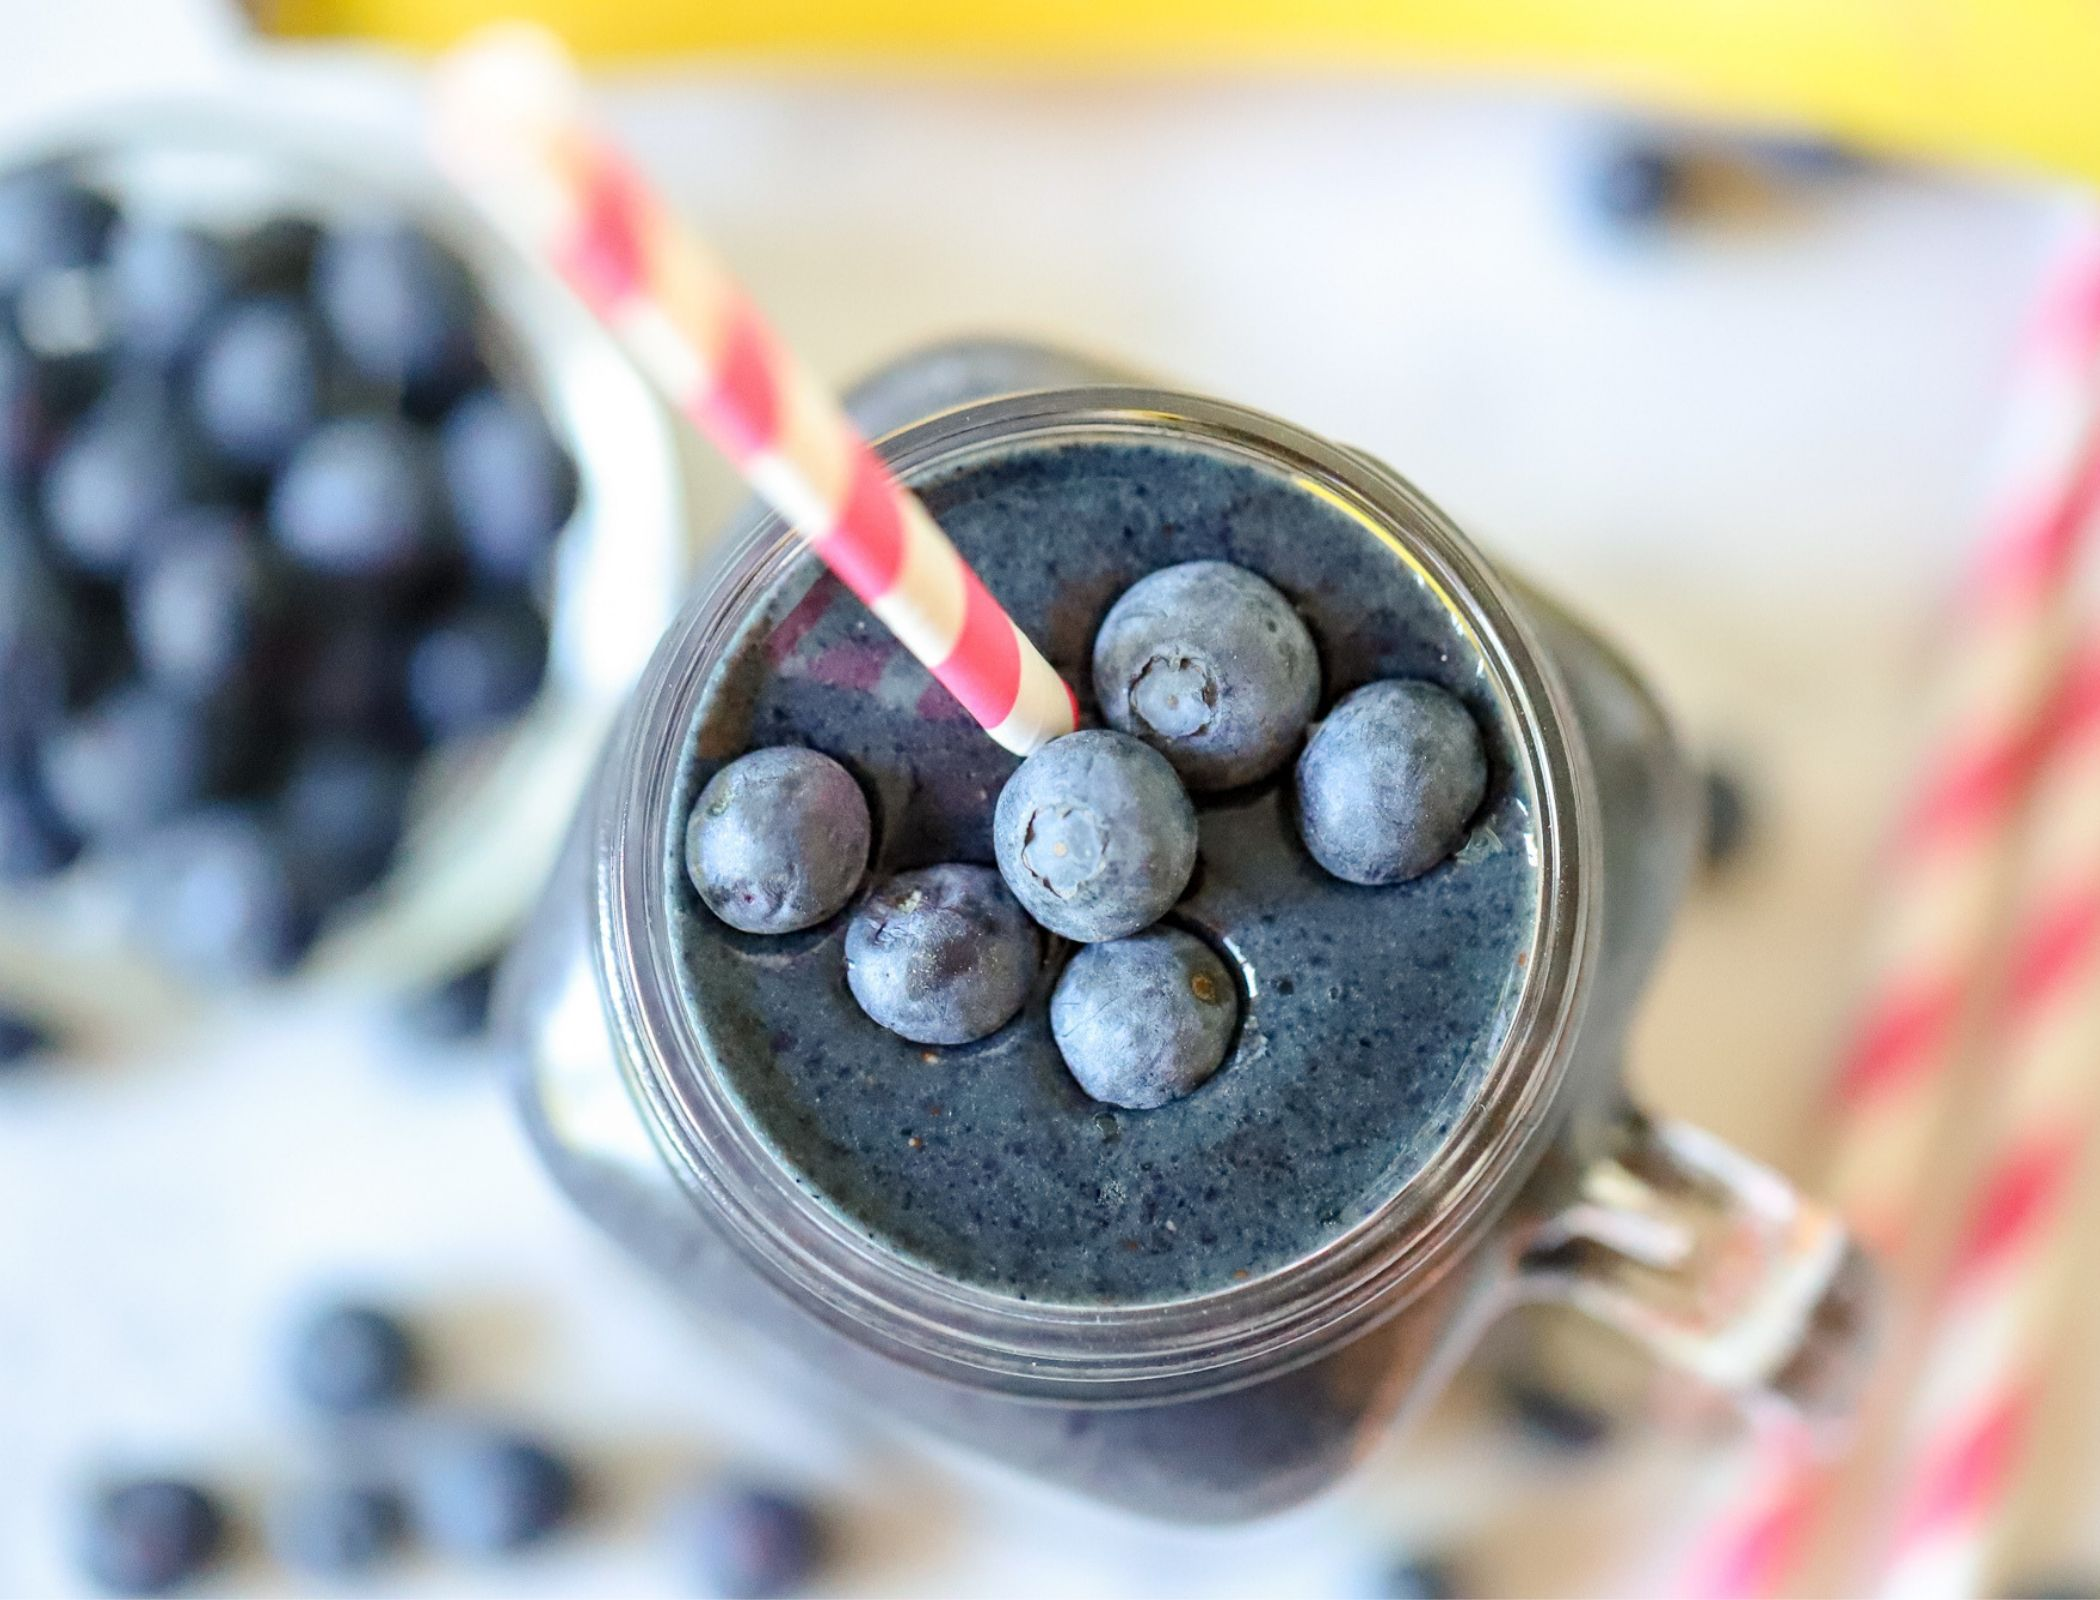 Blueberry smoothie with fresh blueberries